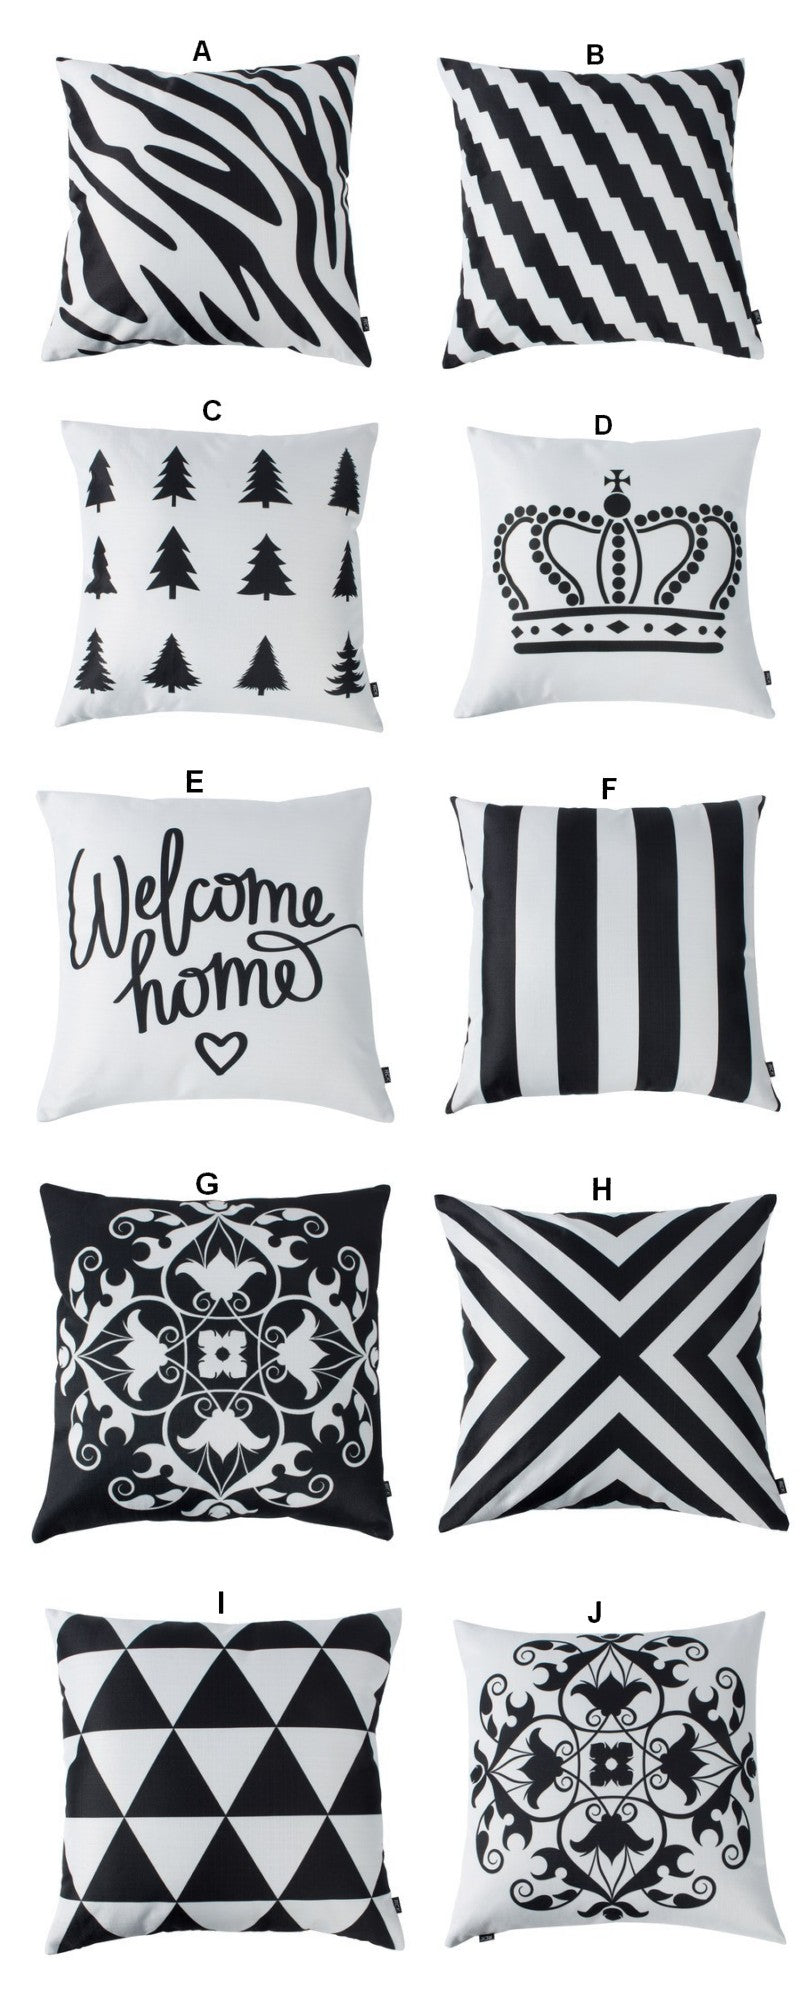 Black and White Cotton and linen Pillow Cover, Decorative Throw Pillow, Sofa Pillows